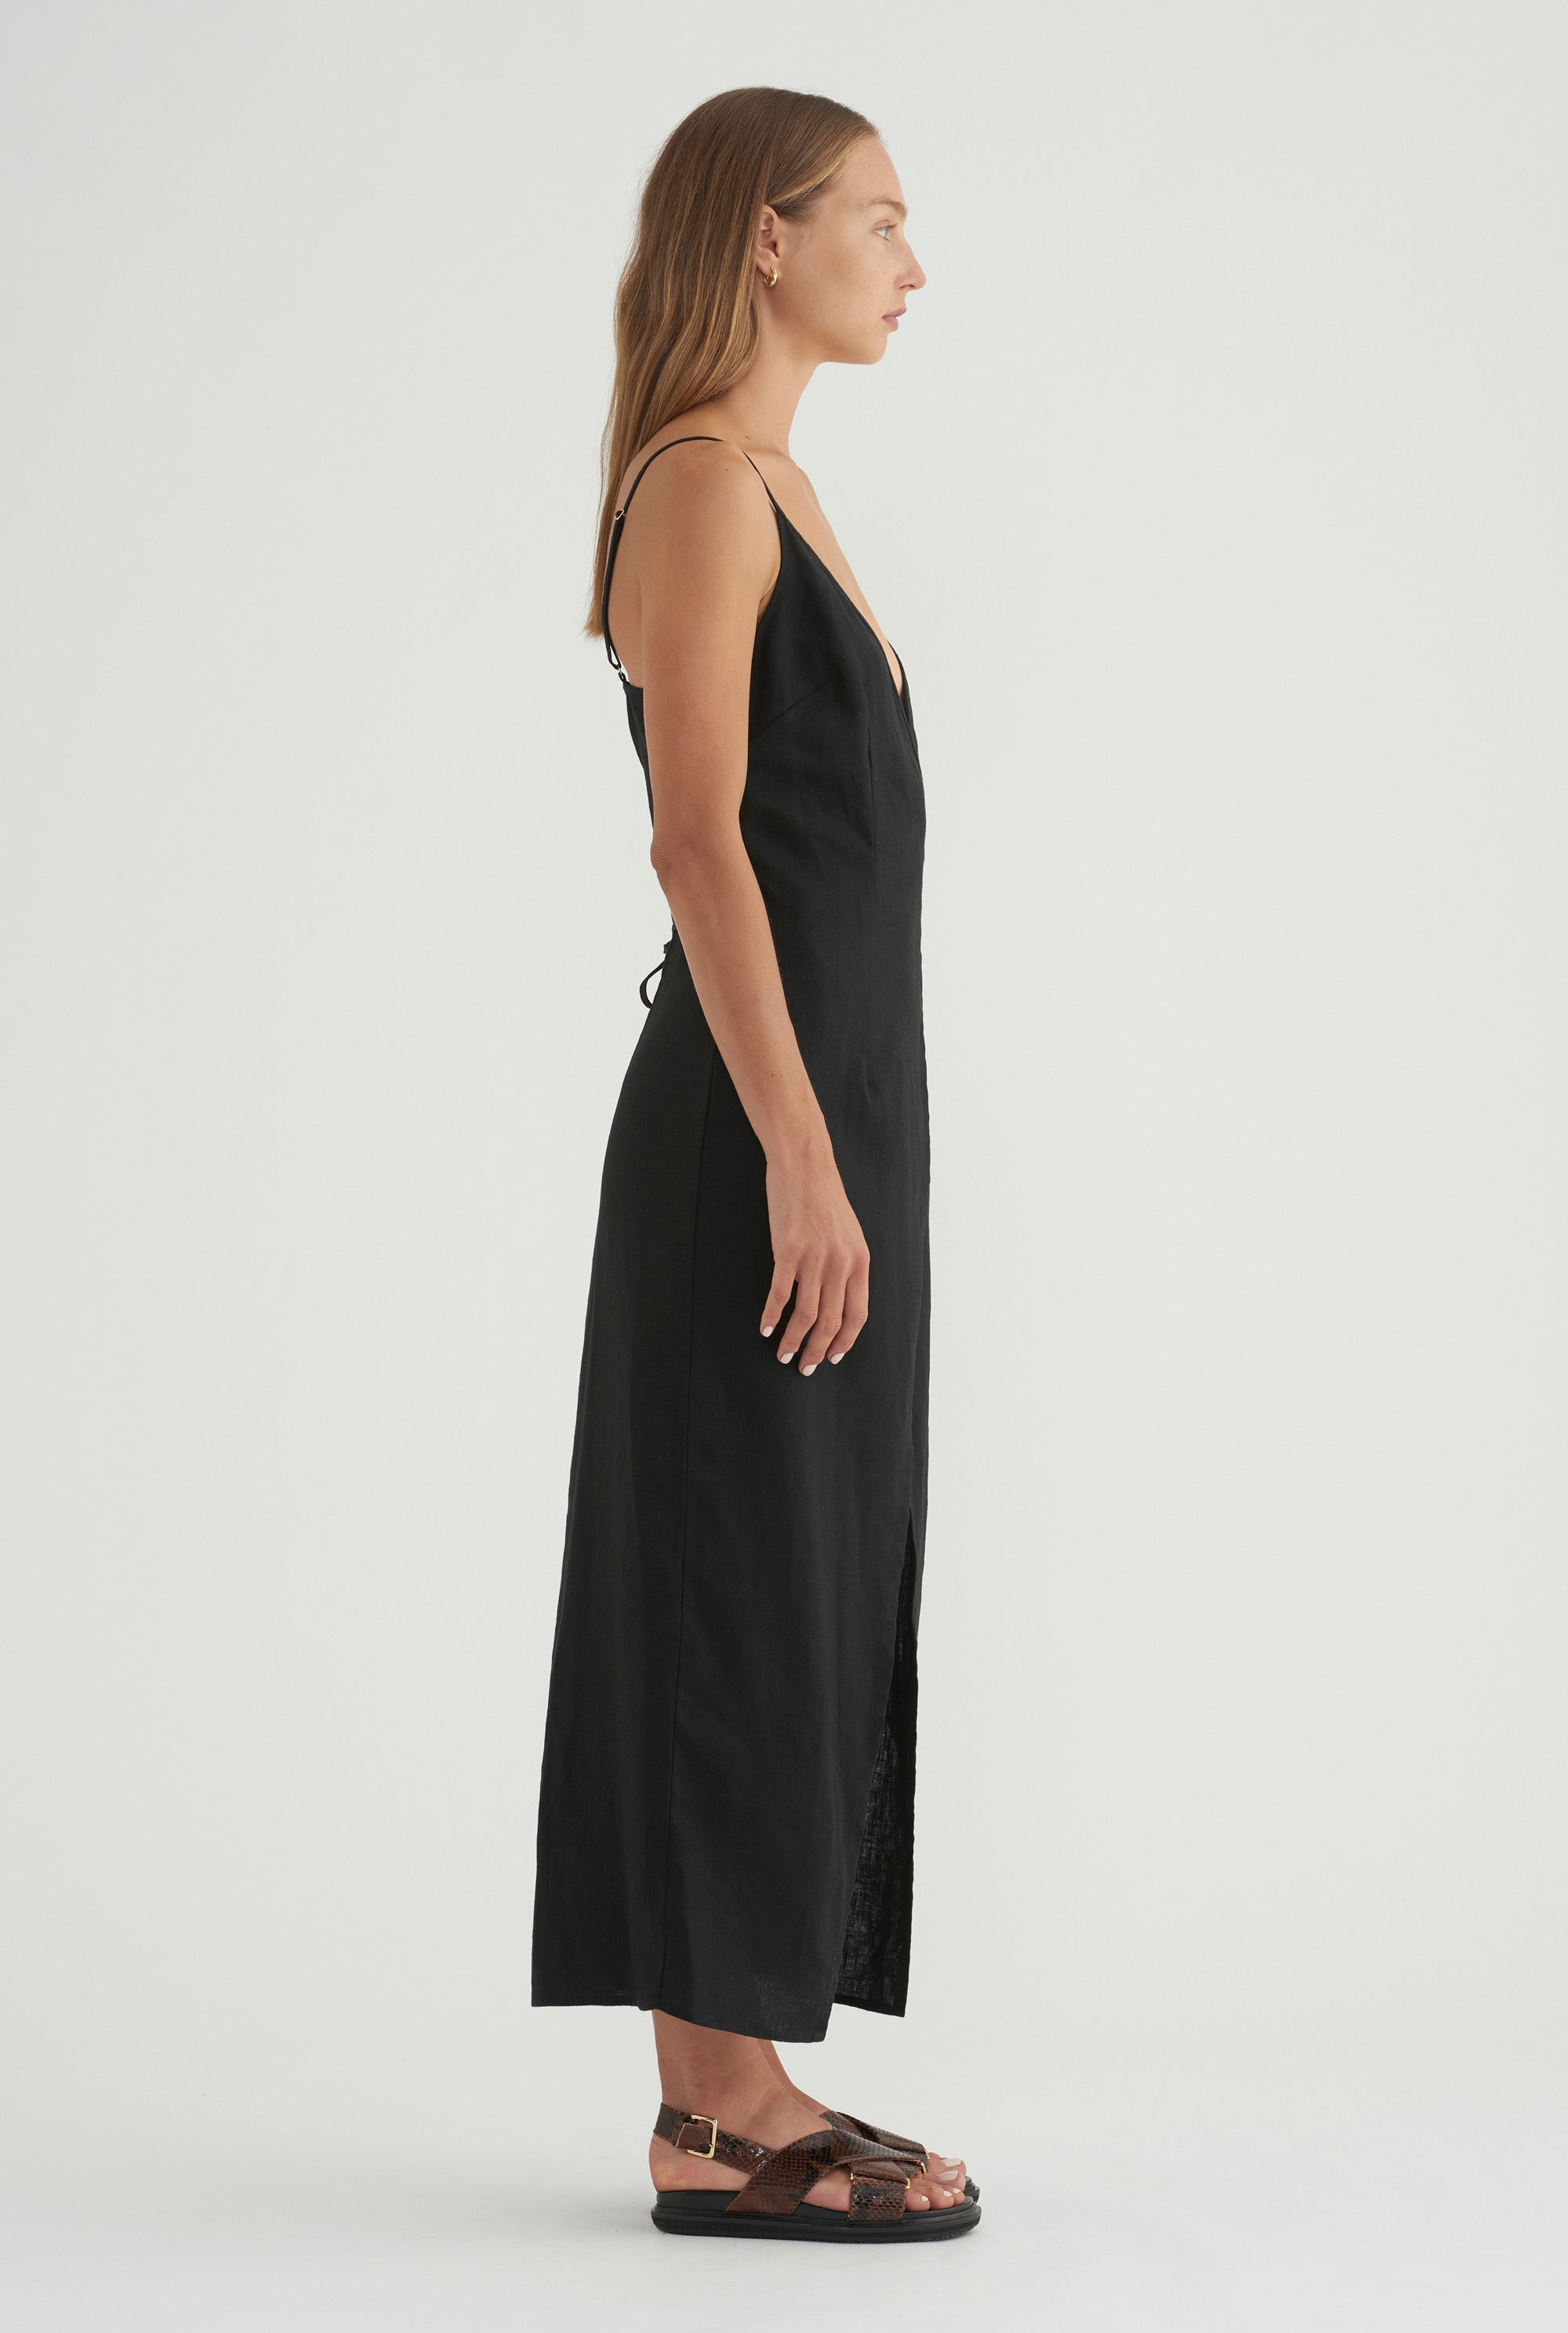 V-Neck Wrap Dress - Black